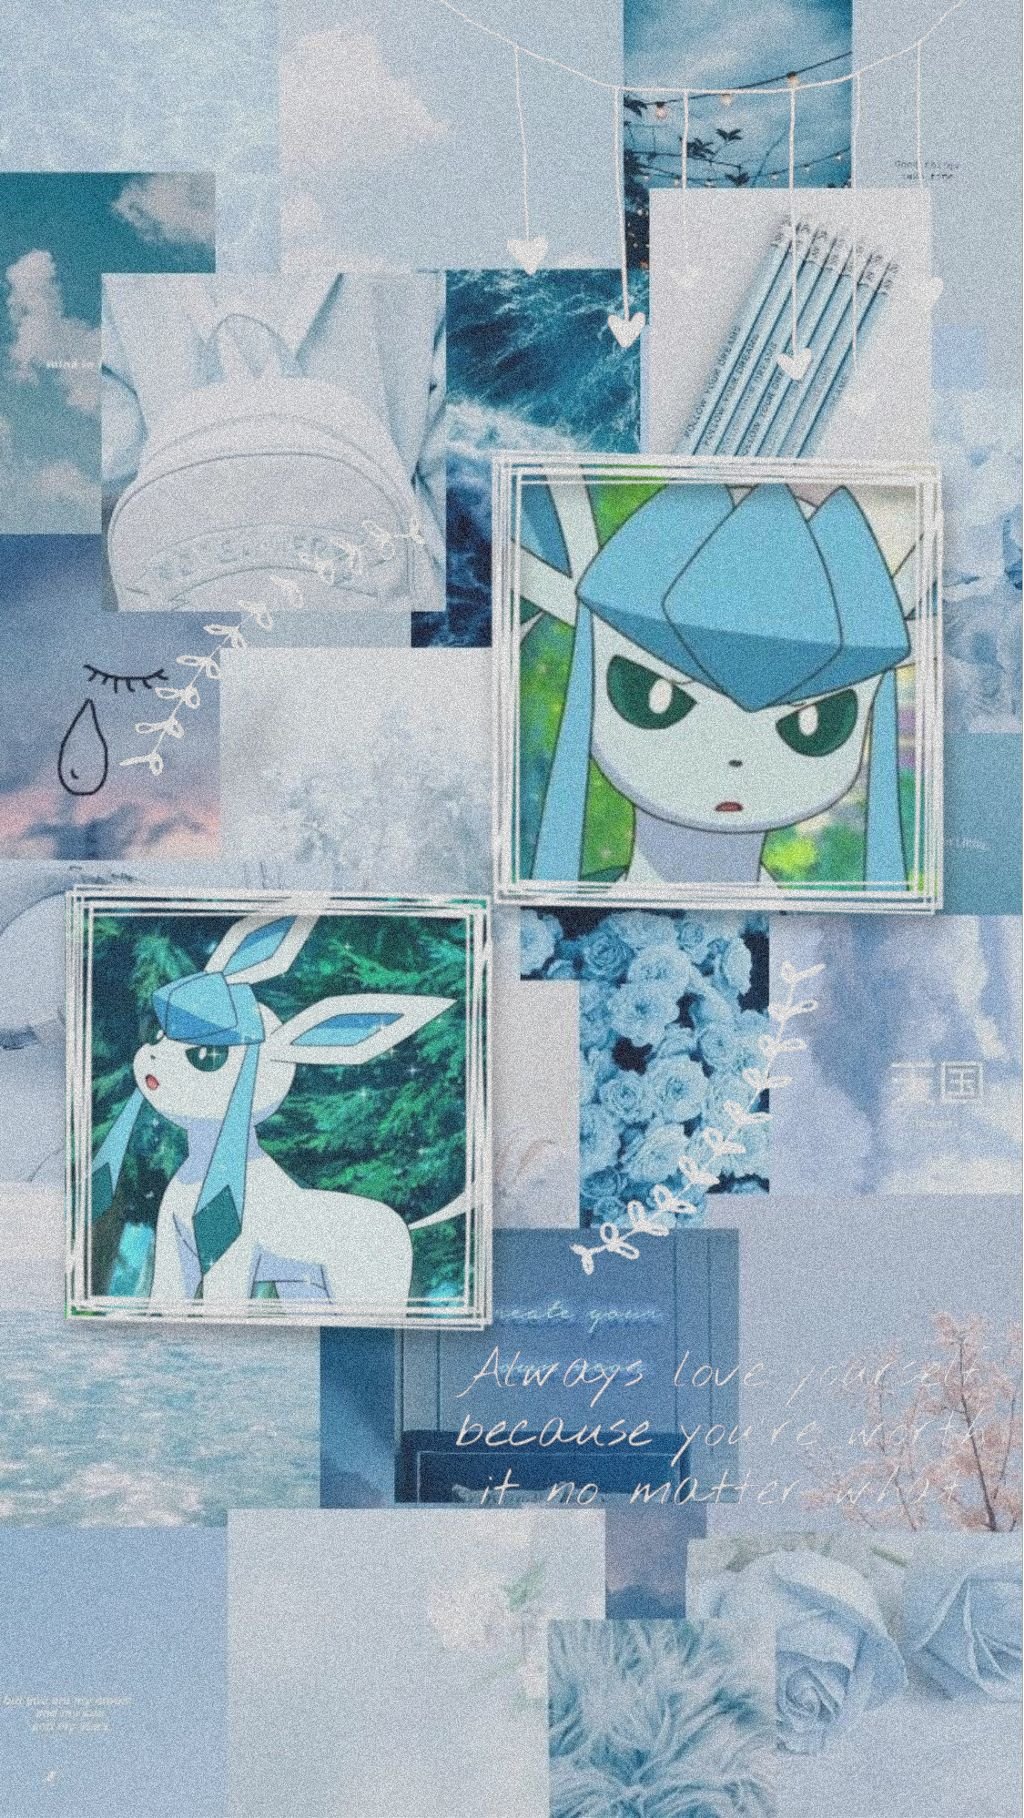 Glaceon Pokemon Wallpaper Aesthetic Blue Freetoedit